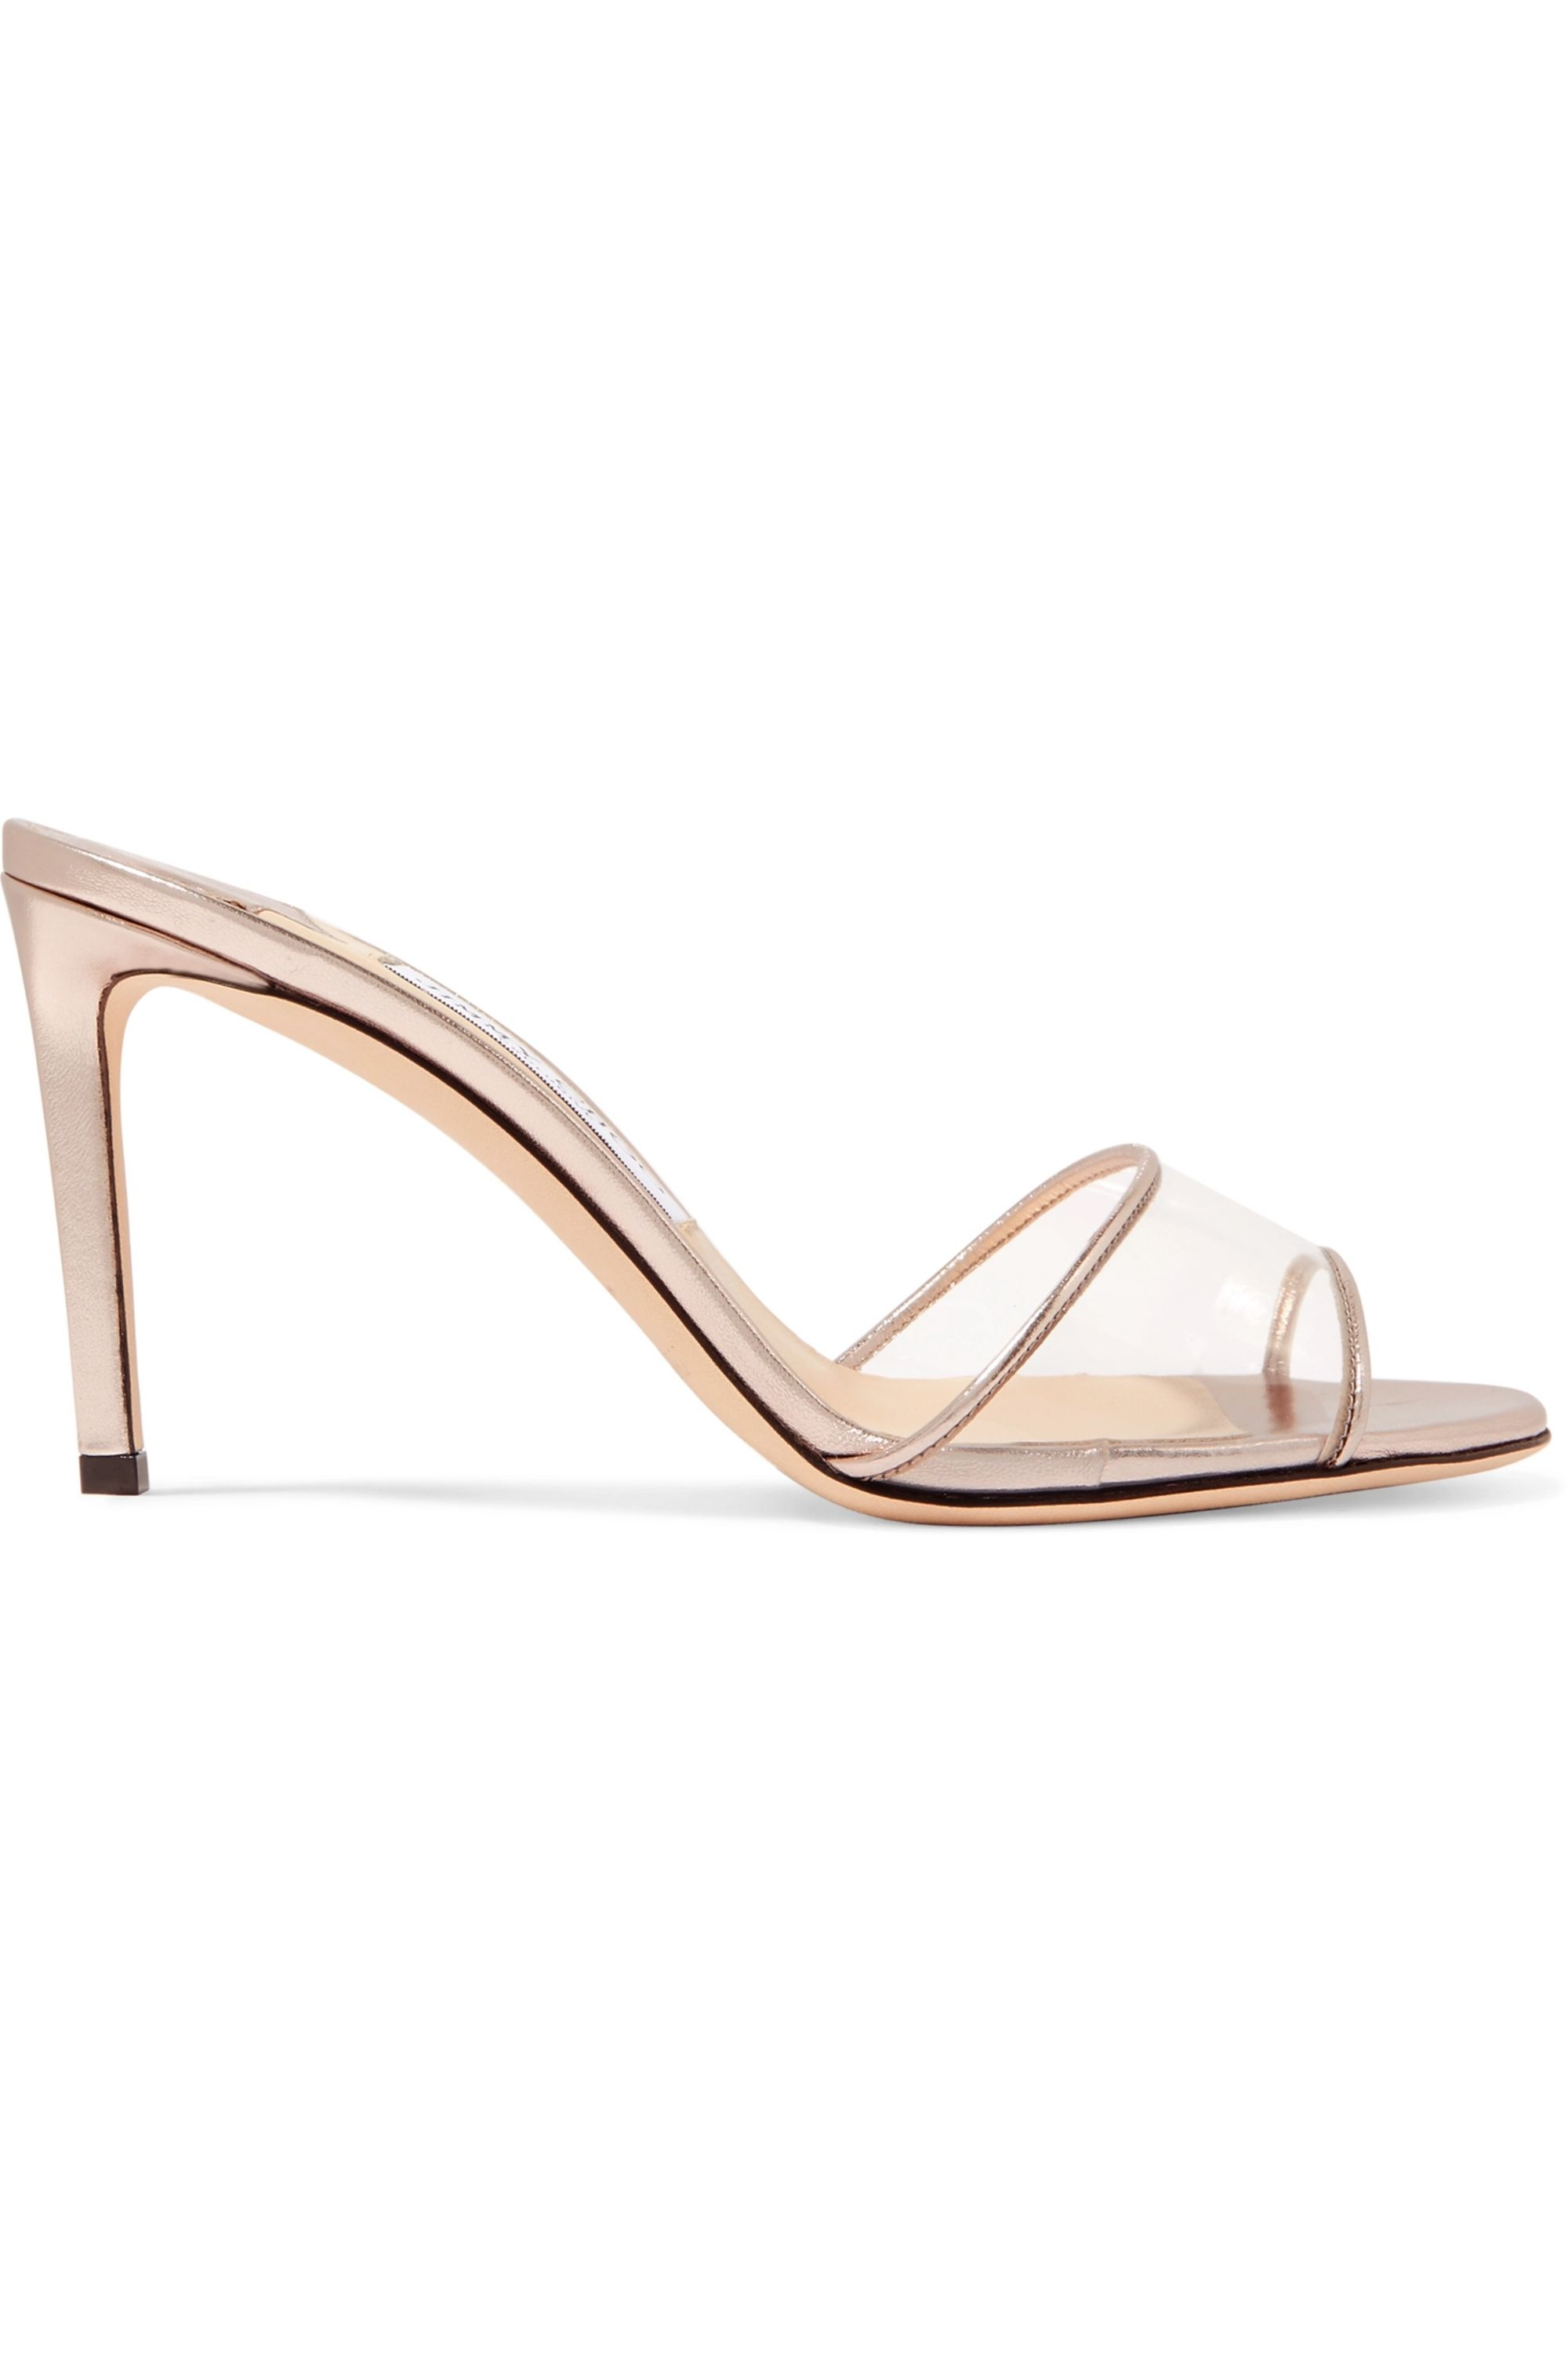 Jimmy Choo Stacey 85 metallic leather and PVC mules